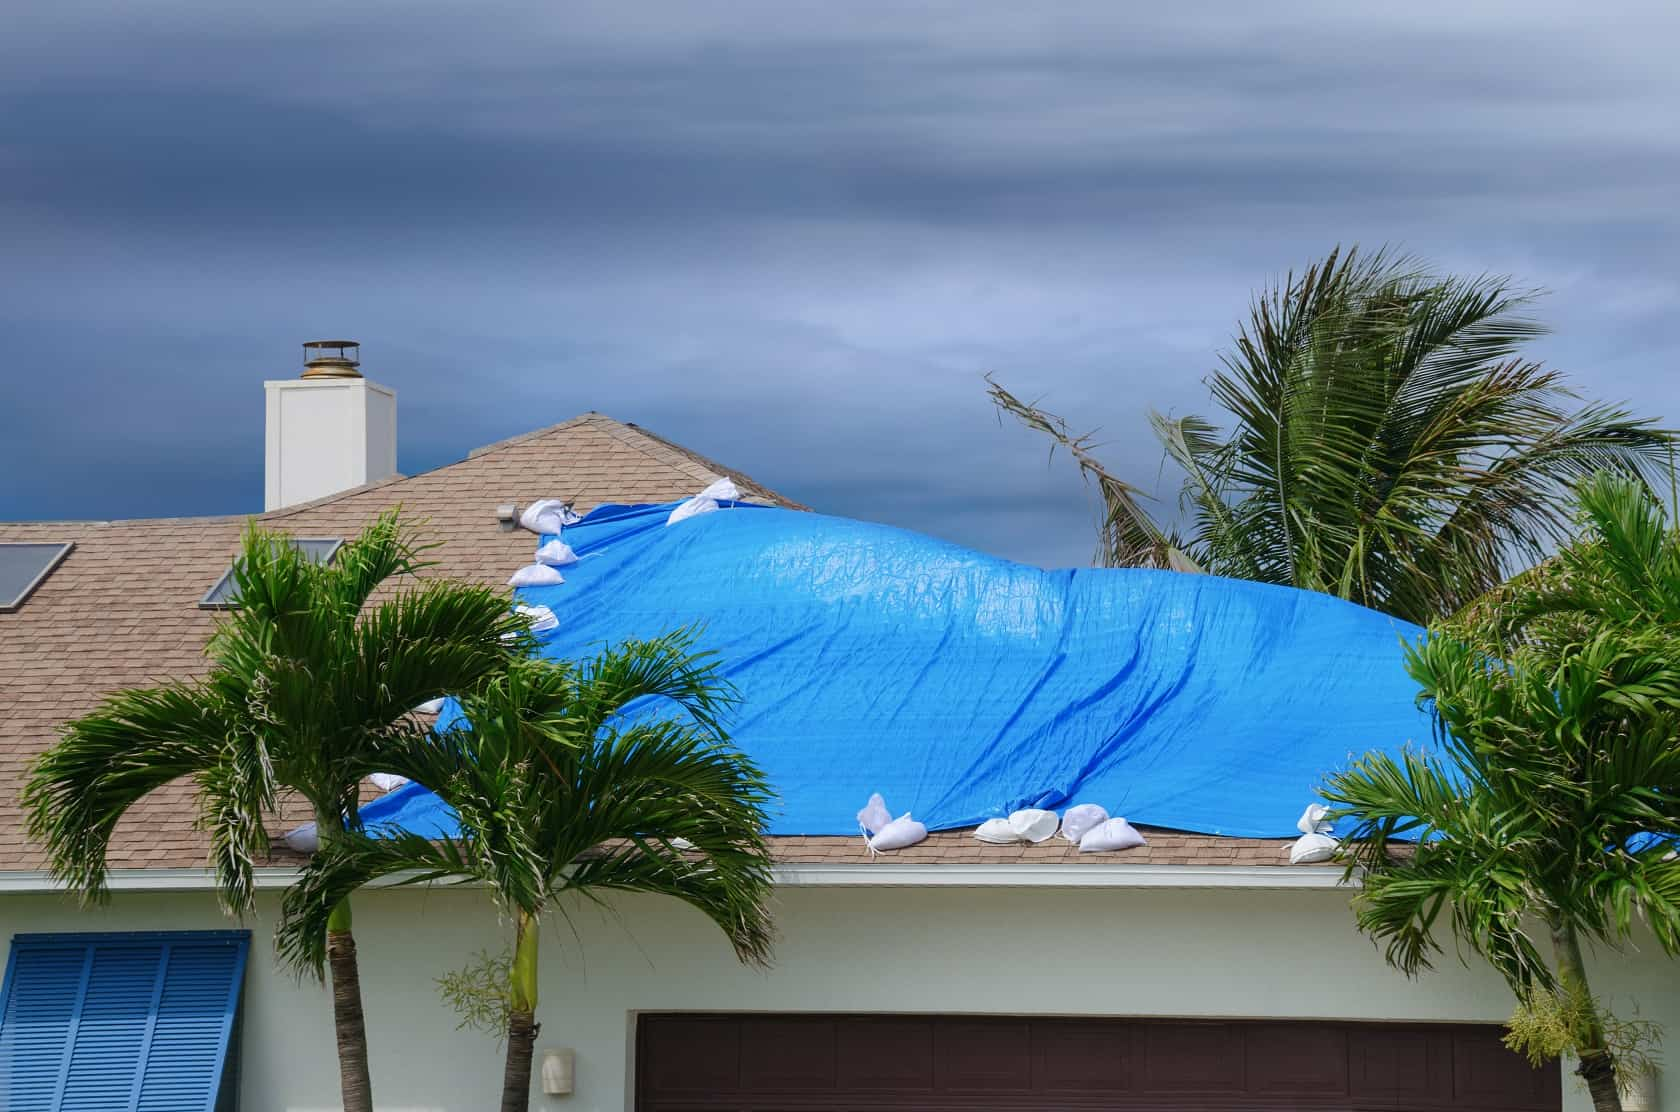 Tarped roof in Florida